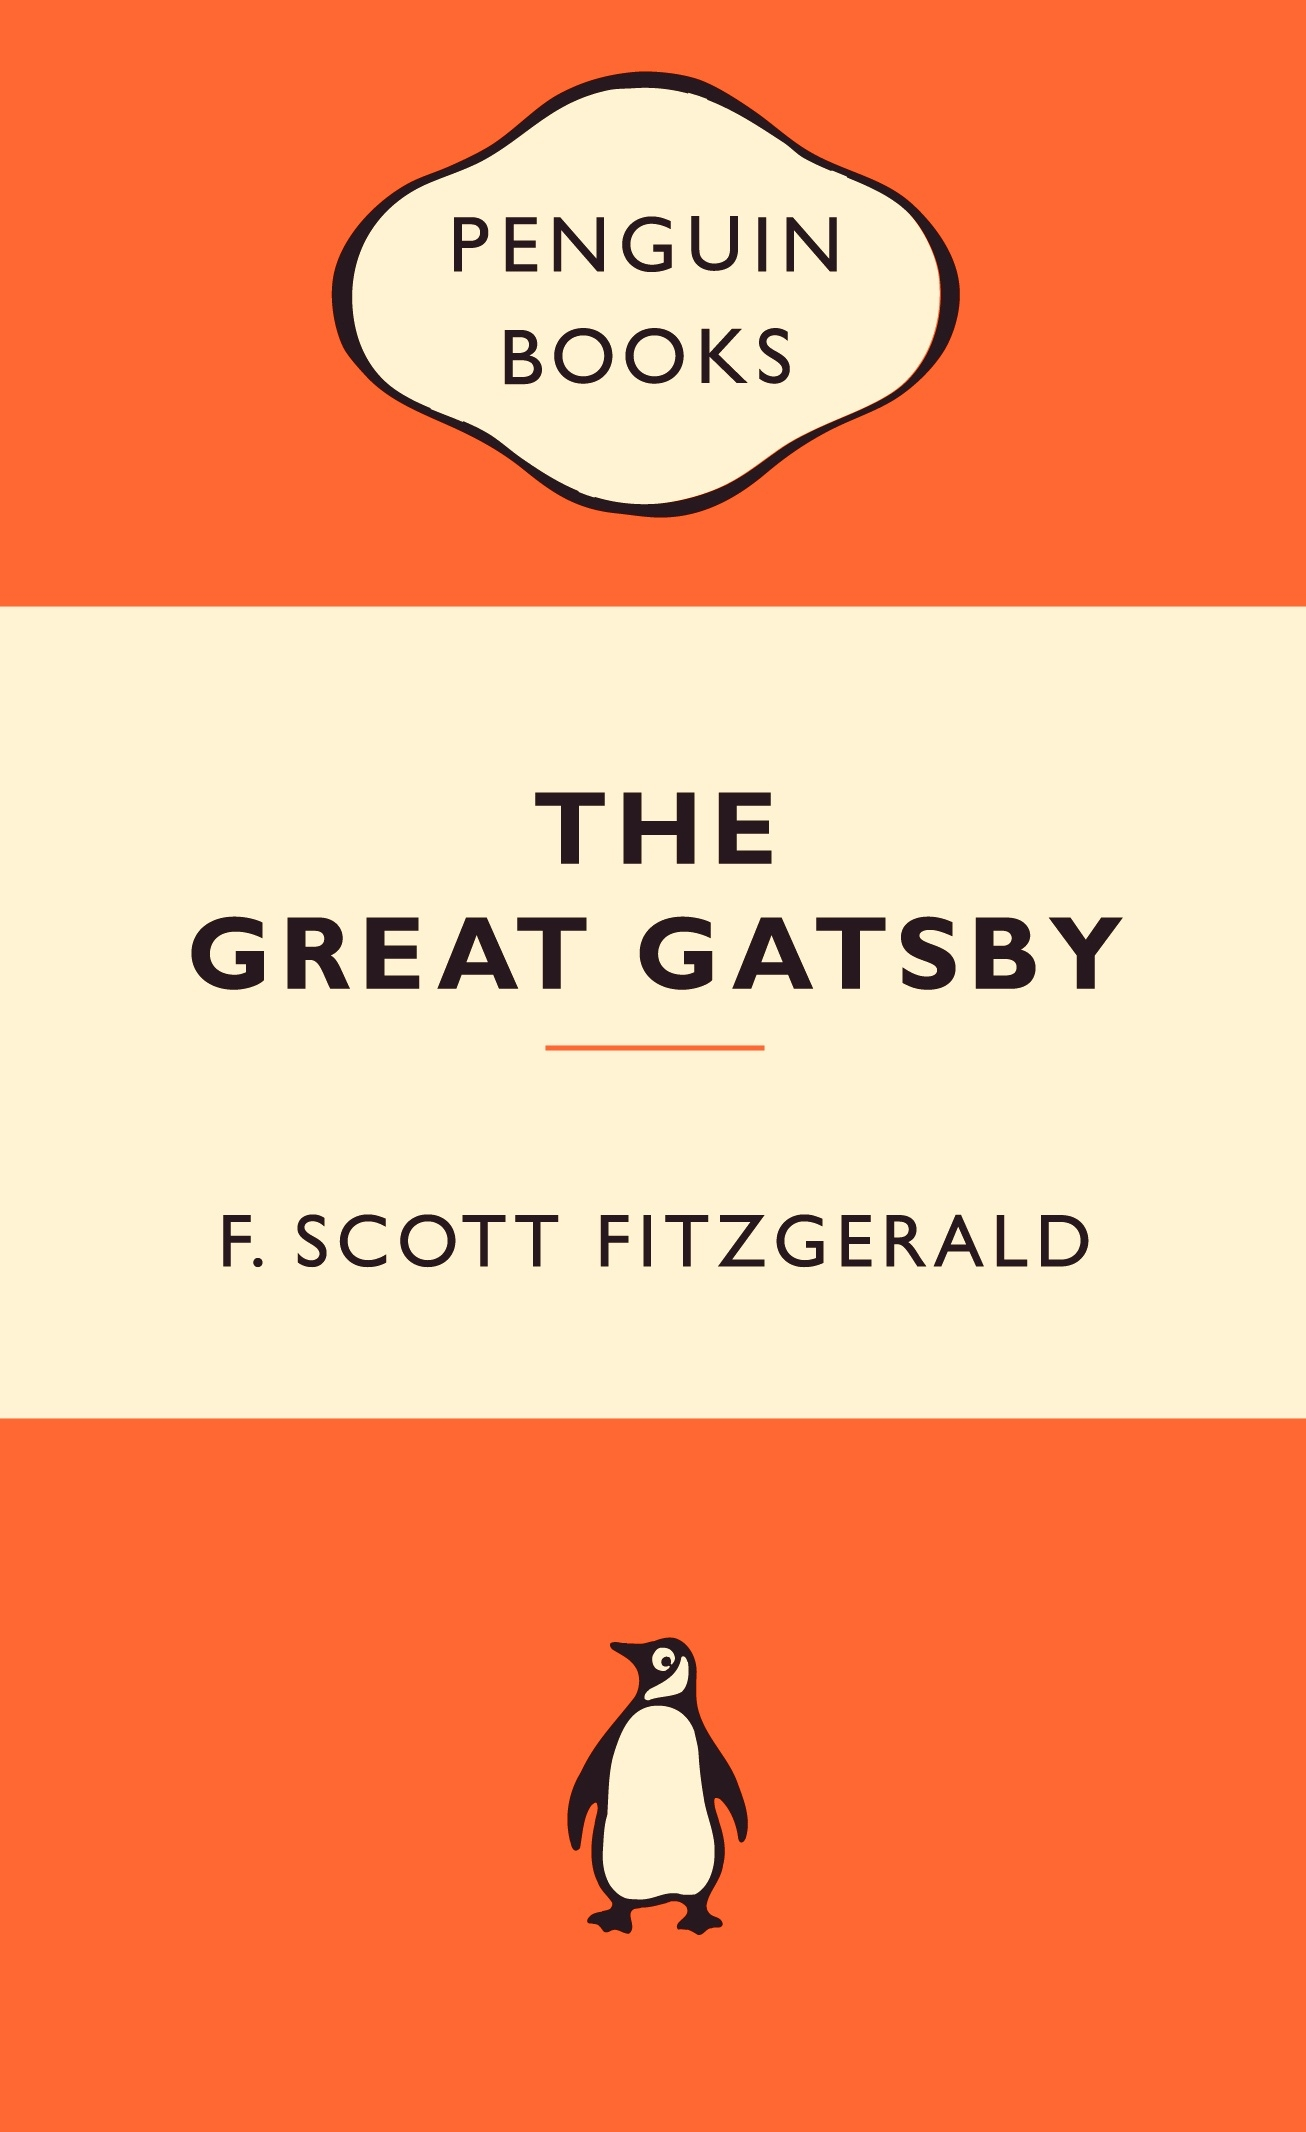 the great gatsby  popular penguins by f scott fitzgerald